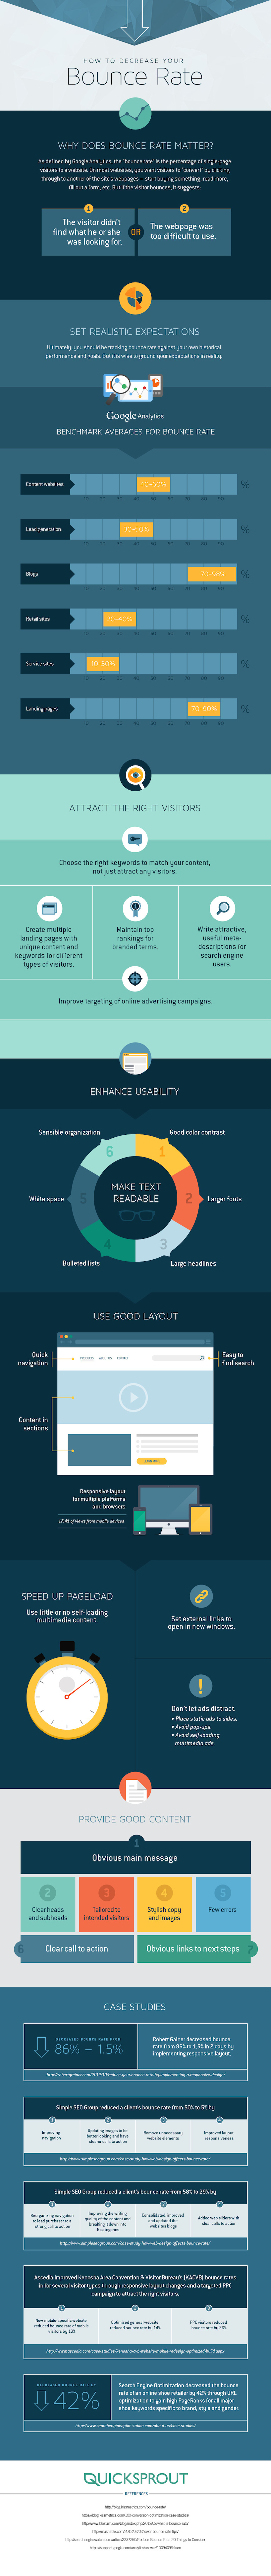 What Is Bounce Rate Or Exit Rate Website Bounce Rate Infographic Source